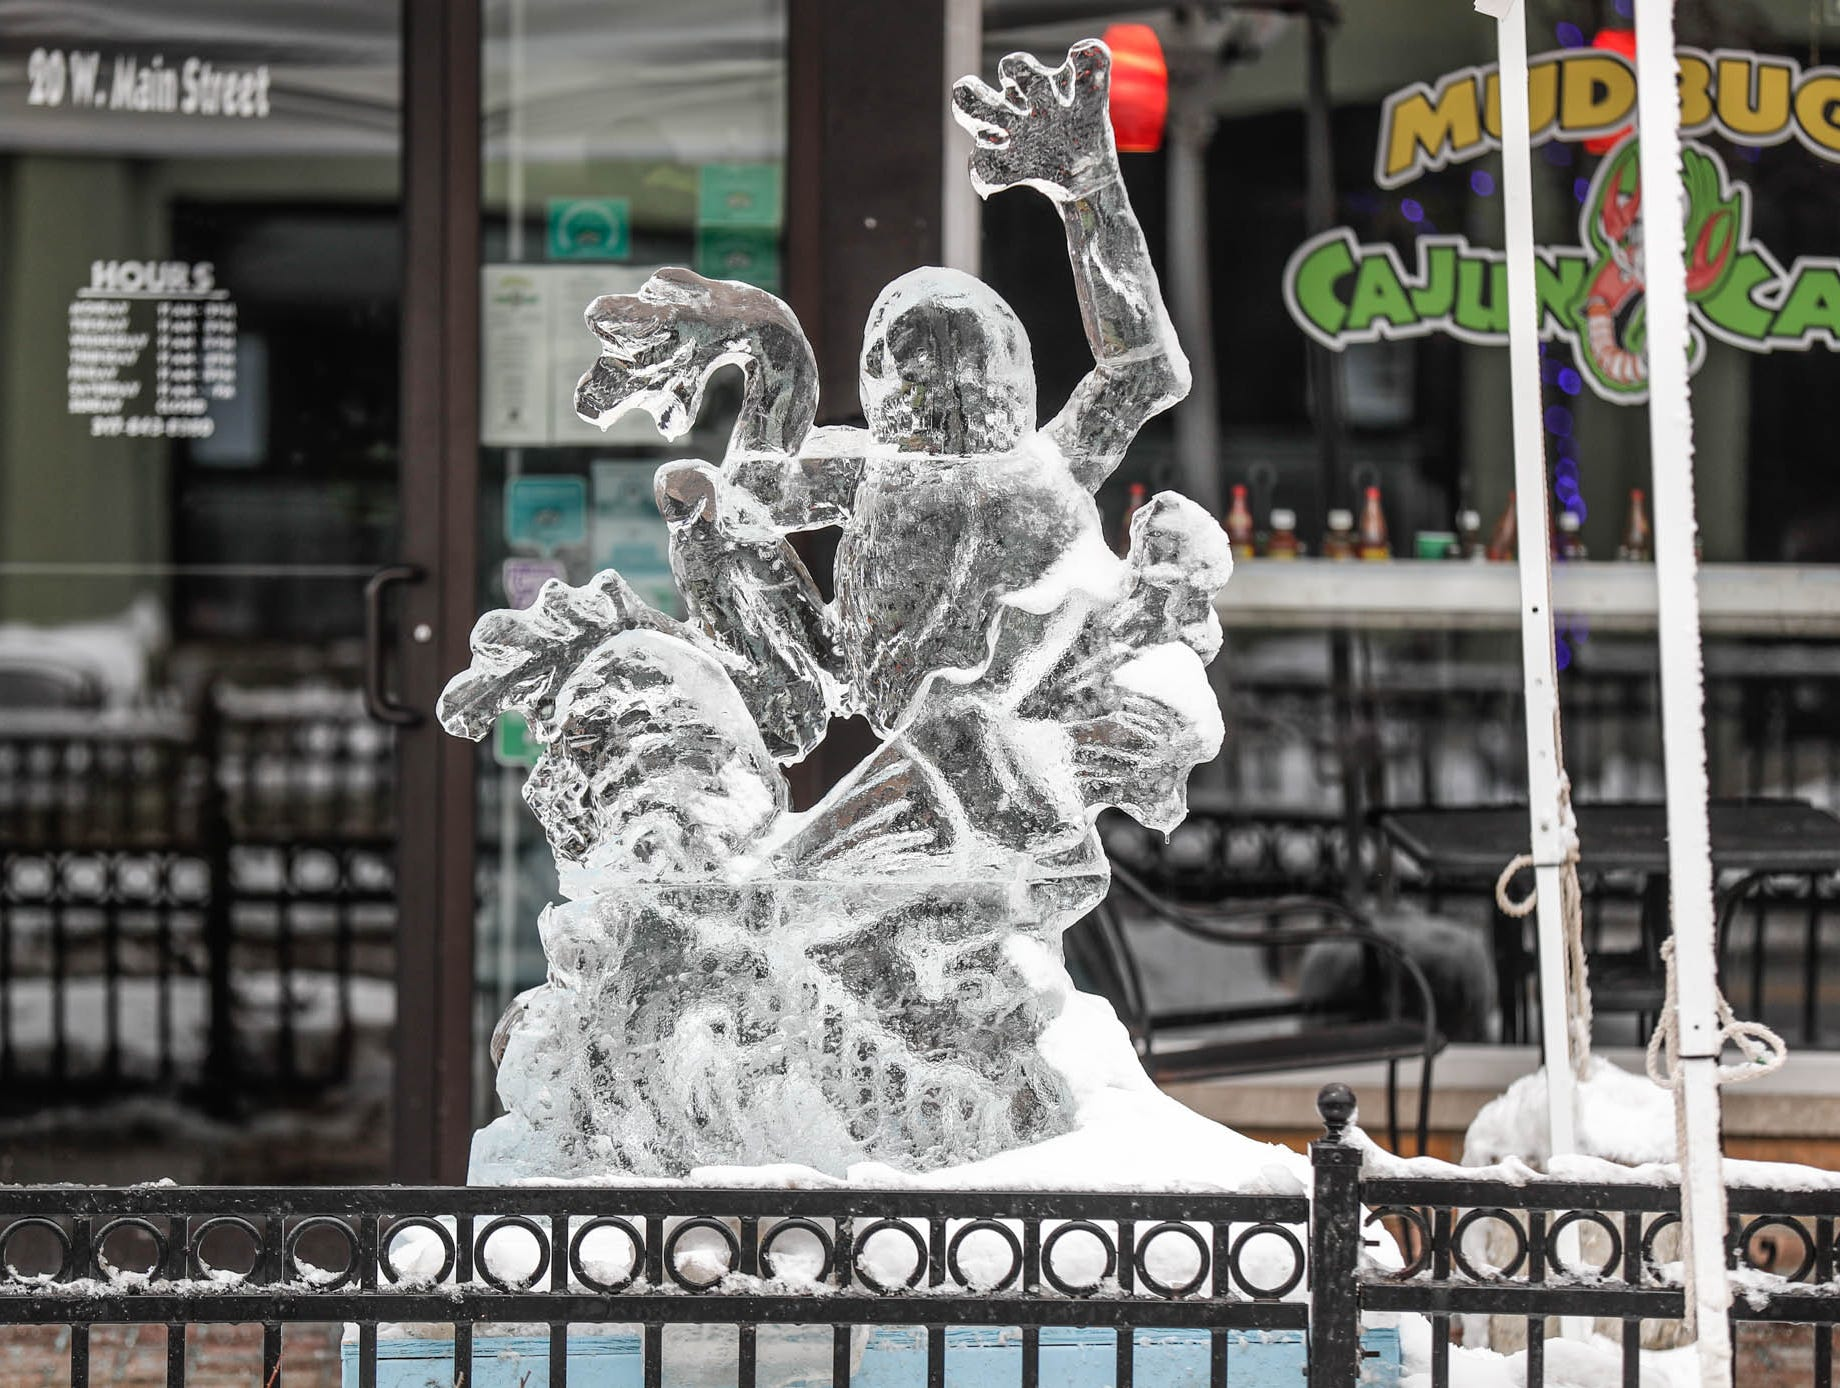 An ice sculpture sits on display outside Mudbugs Cajun Cafe during the second annual Carmel Festival of Ice, held  in Carmel Ind. on Sunday, Jan. 13, 2019.